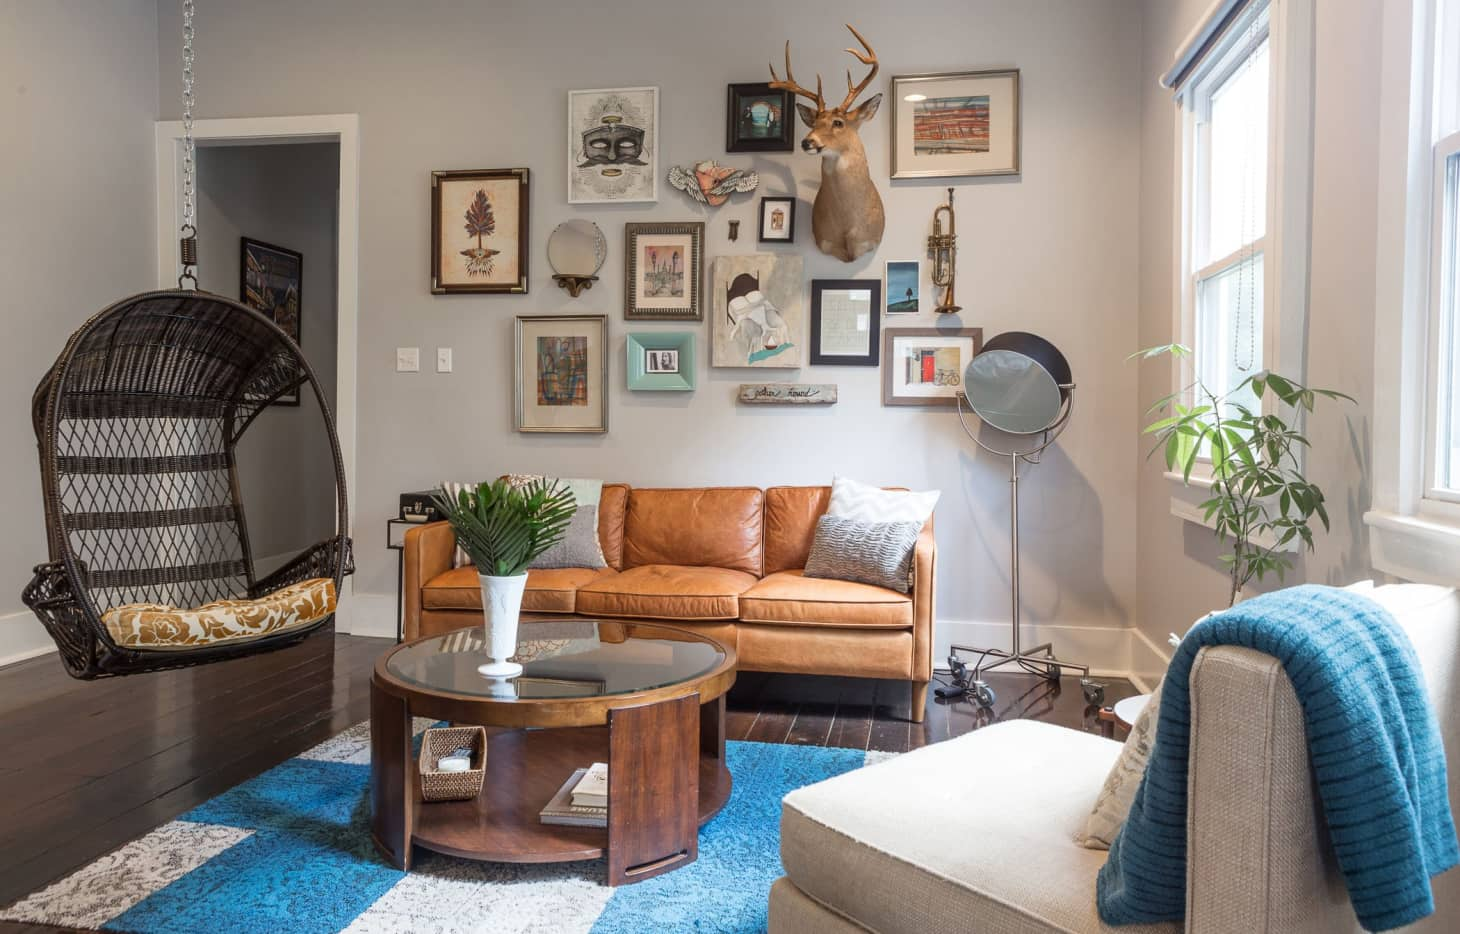 ab744718 House Tour: Modern Meets Sentimental in New Orleans | Apartment Therapy